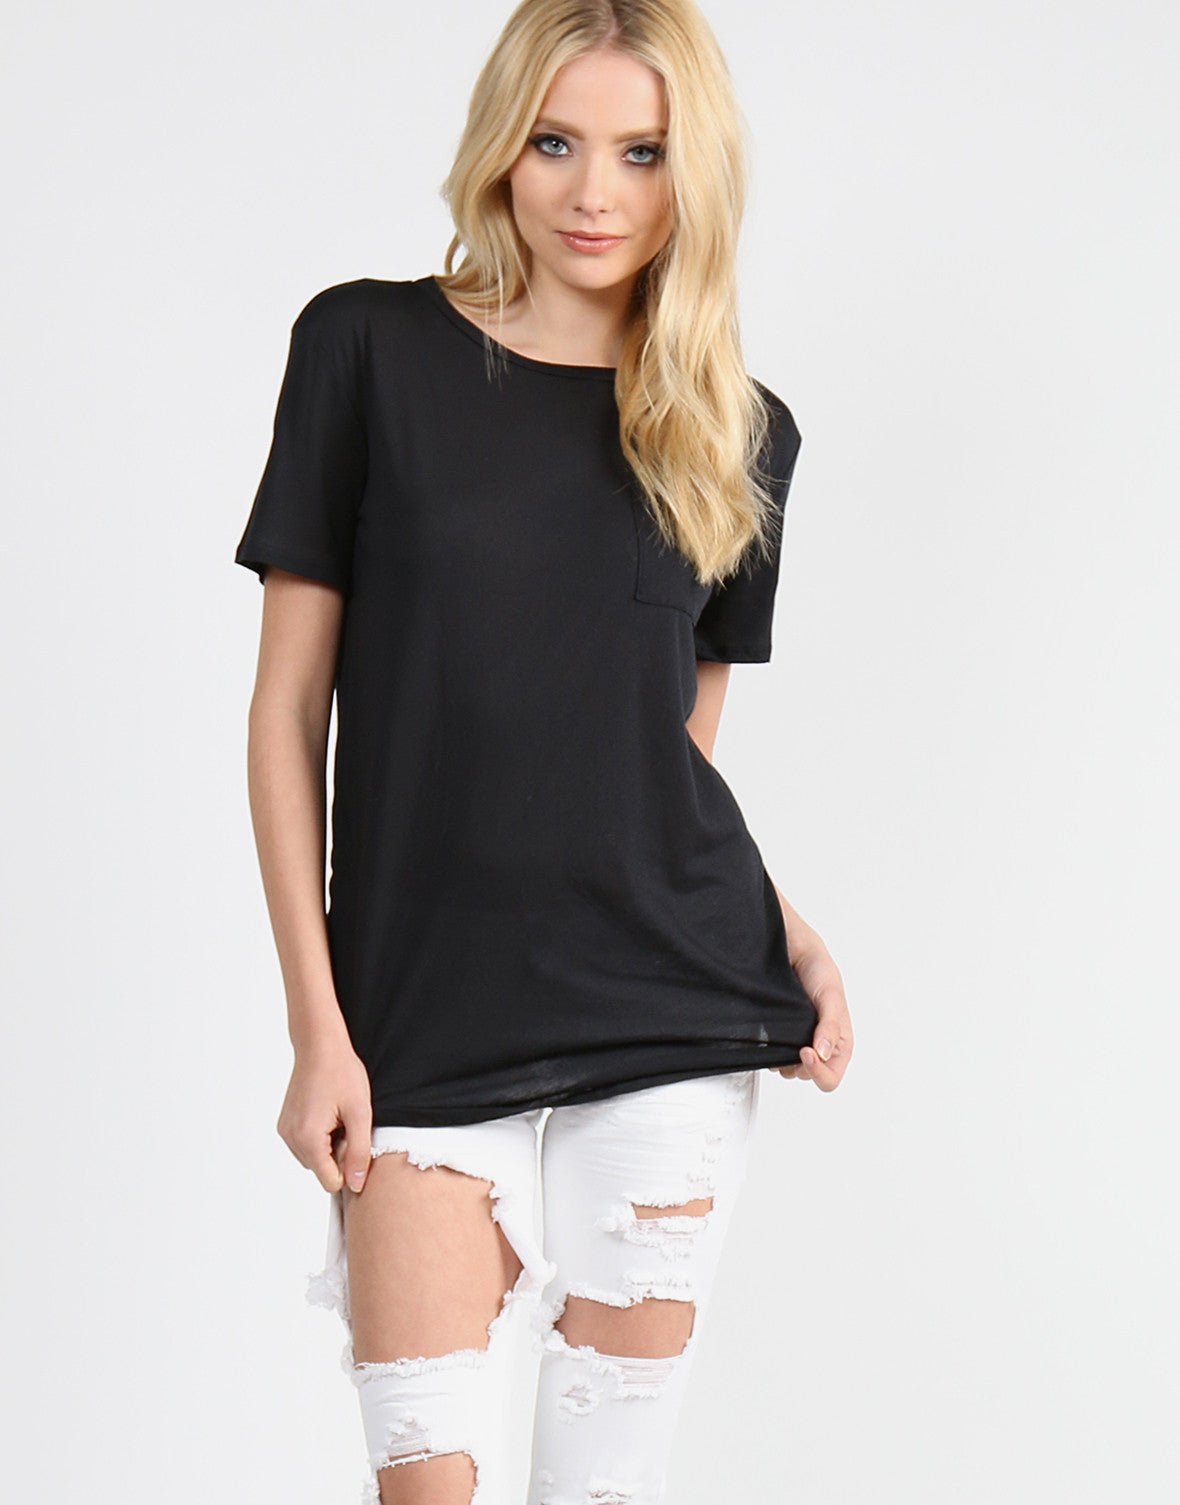 Lightweight Pocket Tunic Tee - Black - Small - 2020AVE